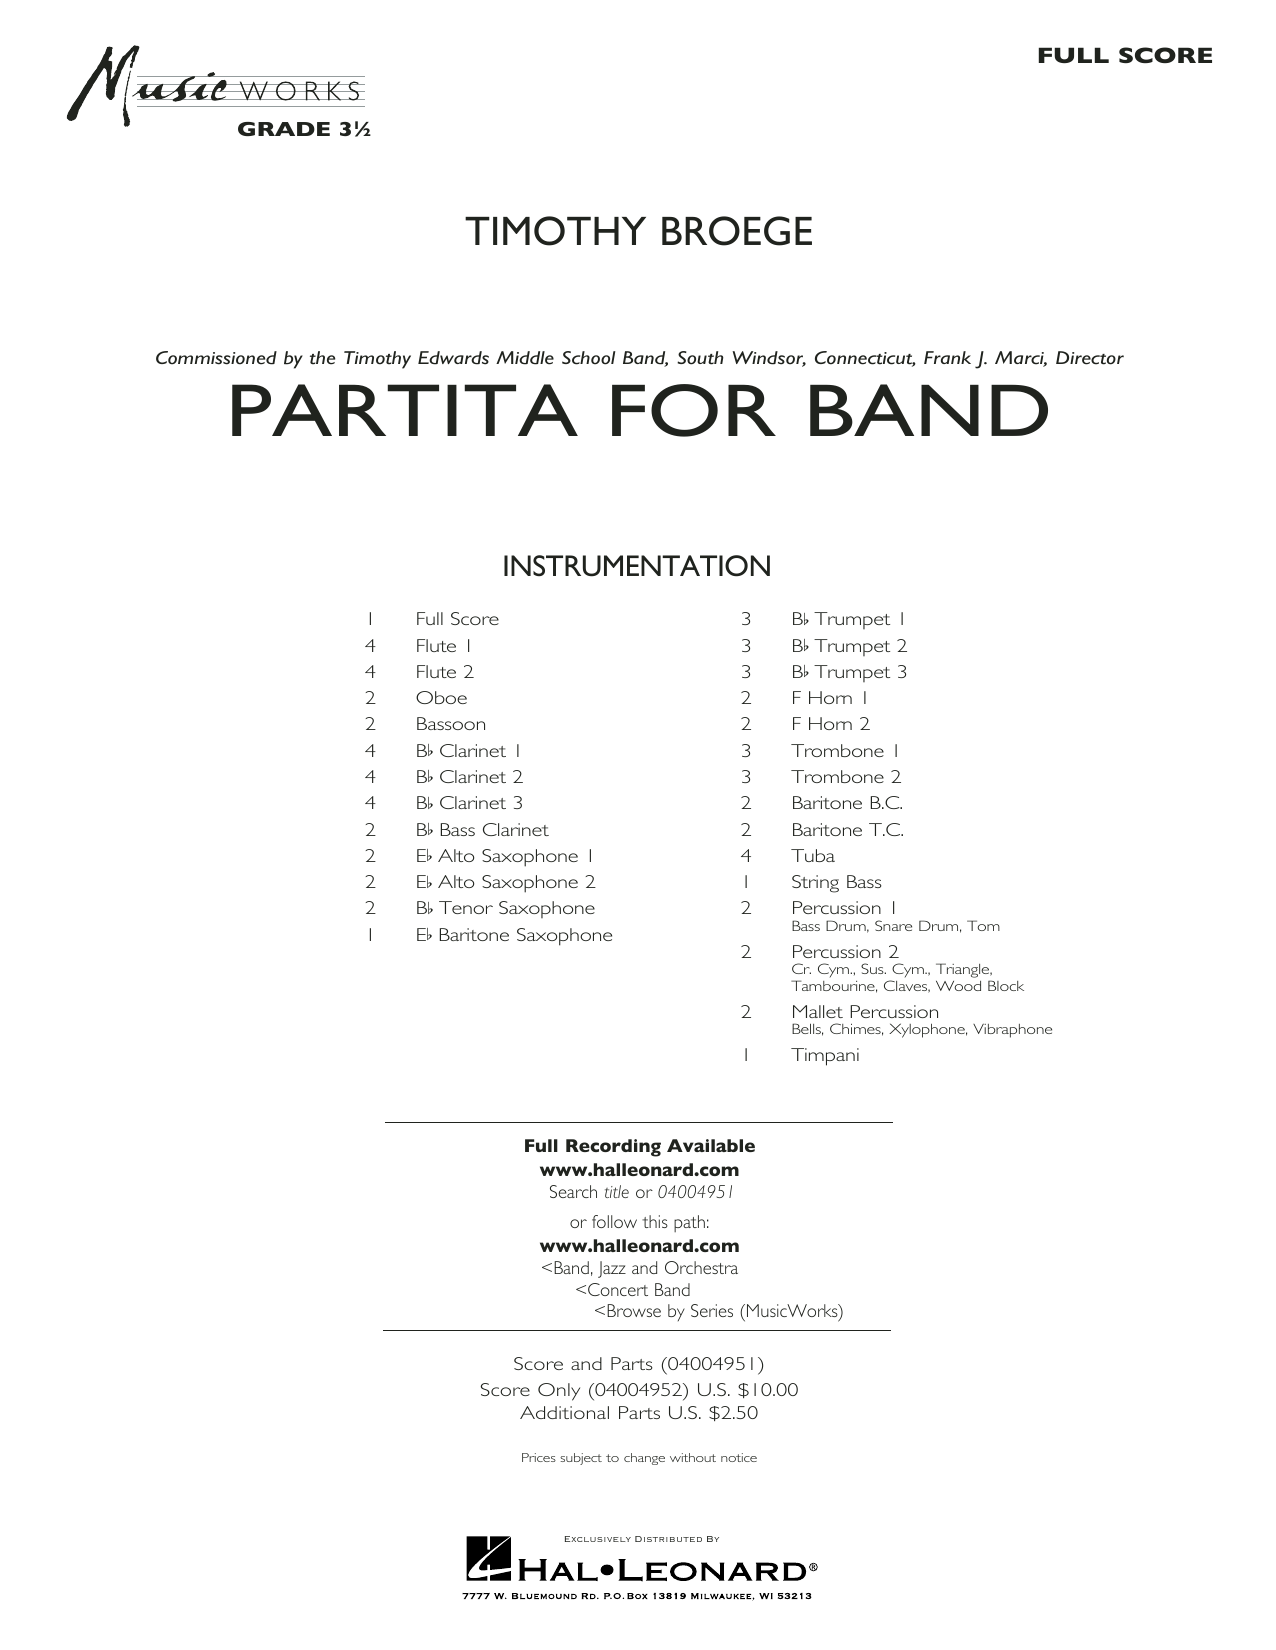 Timothy Broege Partita for Band - Conductor Score (Full Score) sheet music preview music notes and score for Concert Band including 36 page(s)